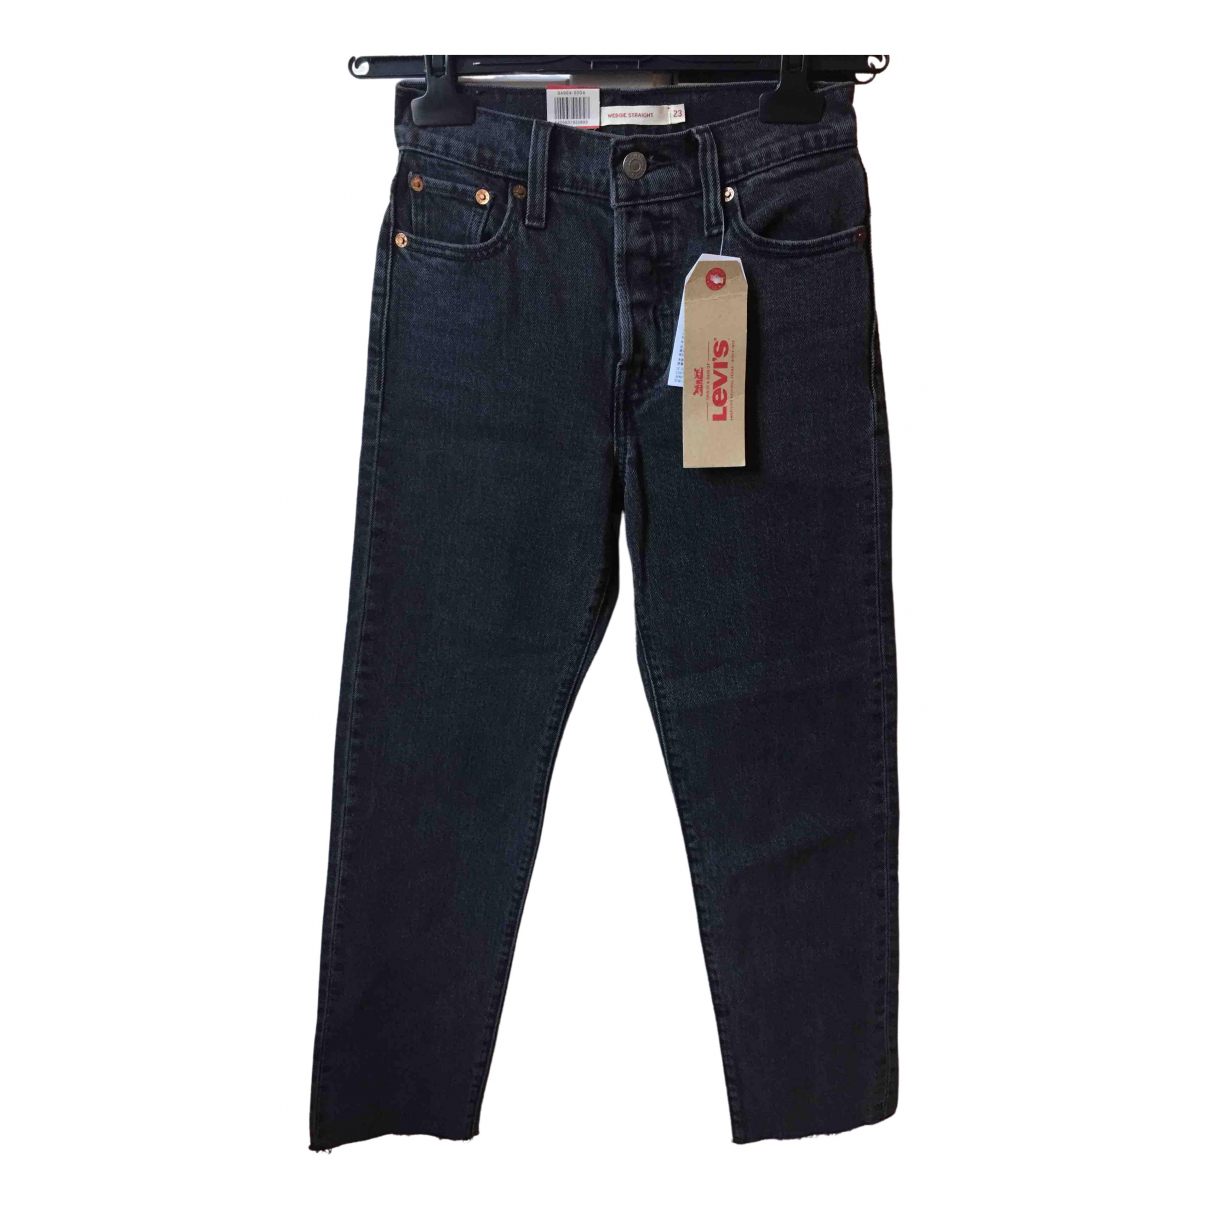 Levi's \N Anthracite Denim - Jeans Jeans for Women 24 US